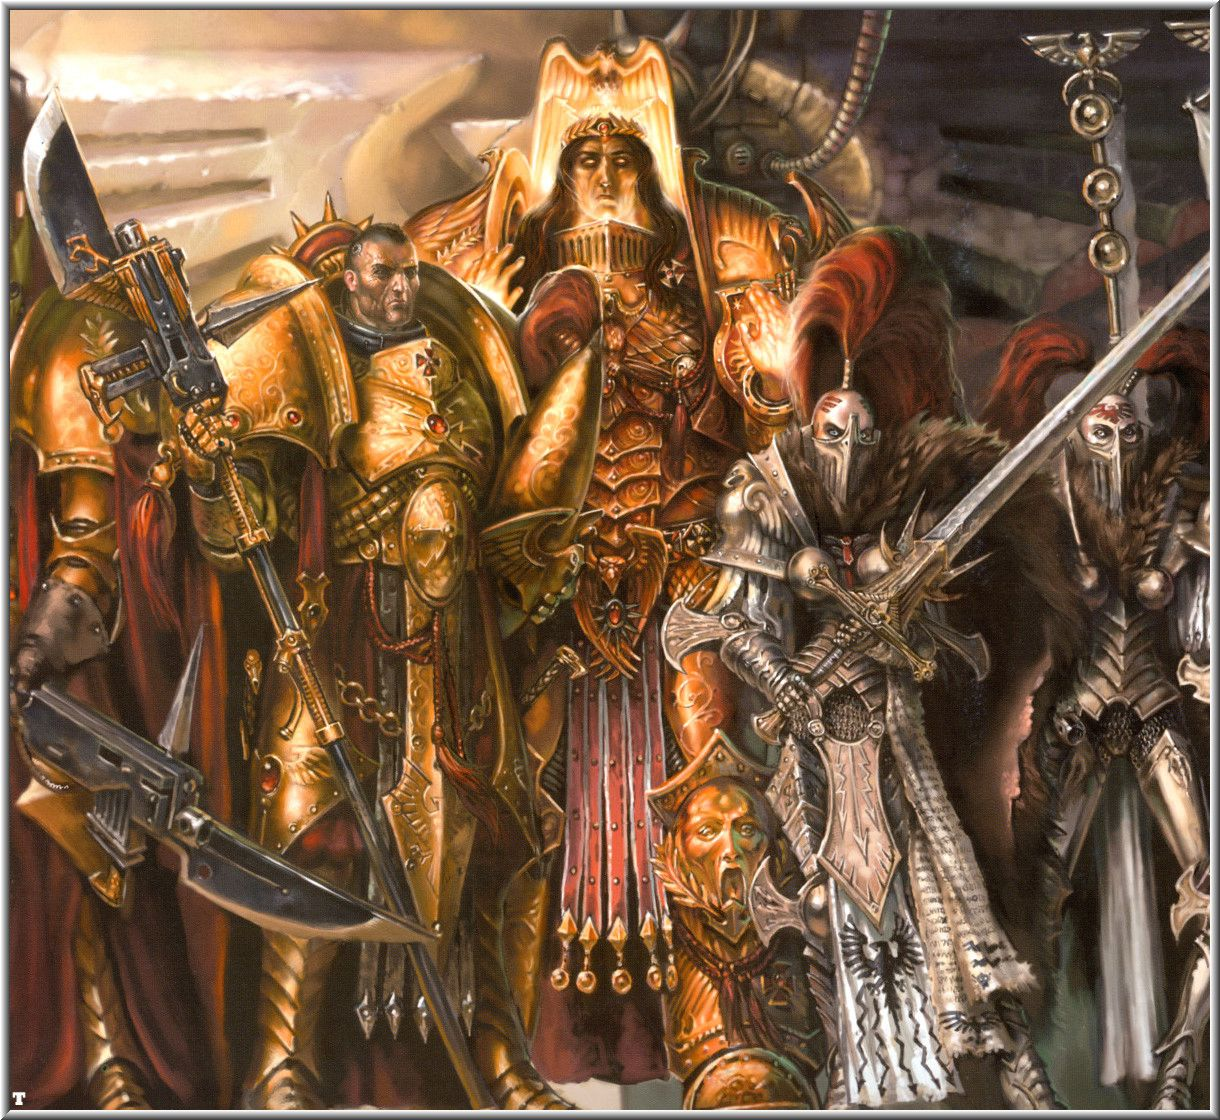 Grande Croisade - Page 5 20111125223250!God_Emperor_with_Adeptus_Custodes_and_Slient_Sisters